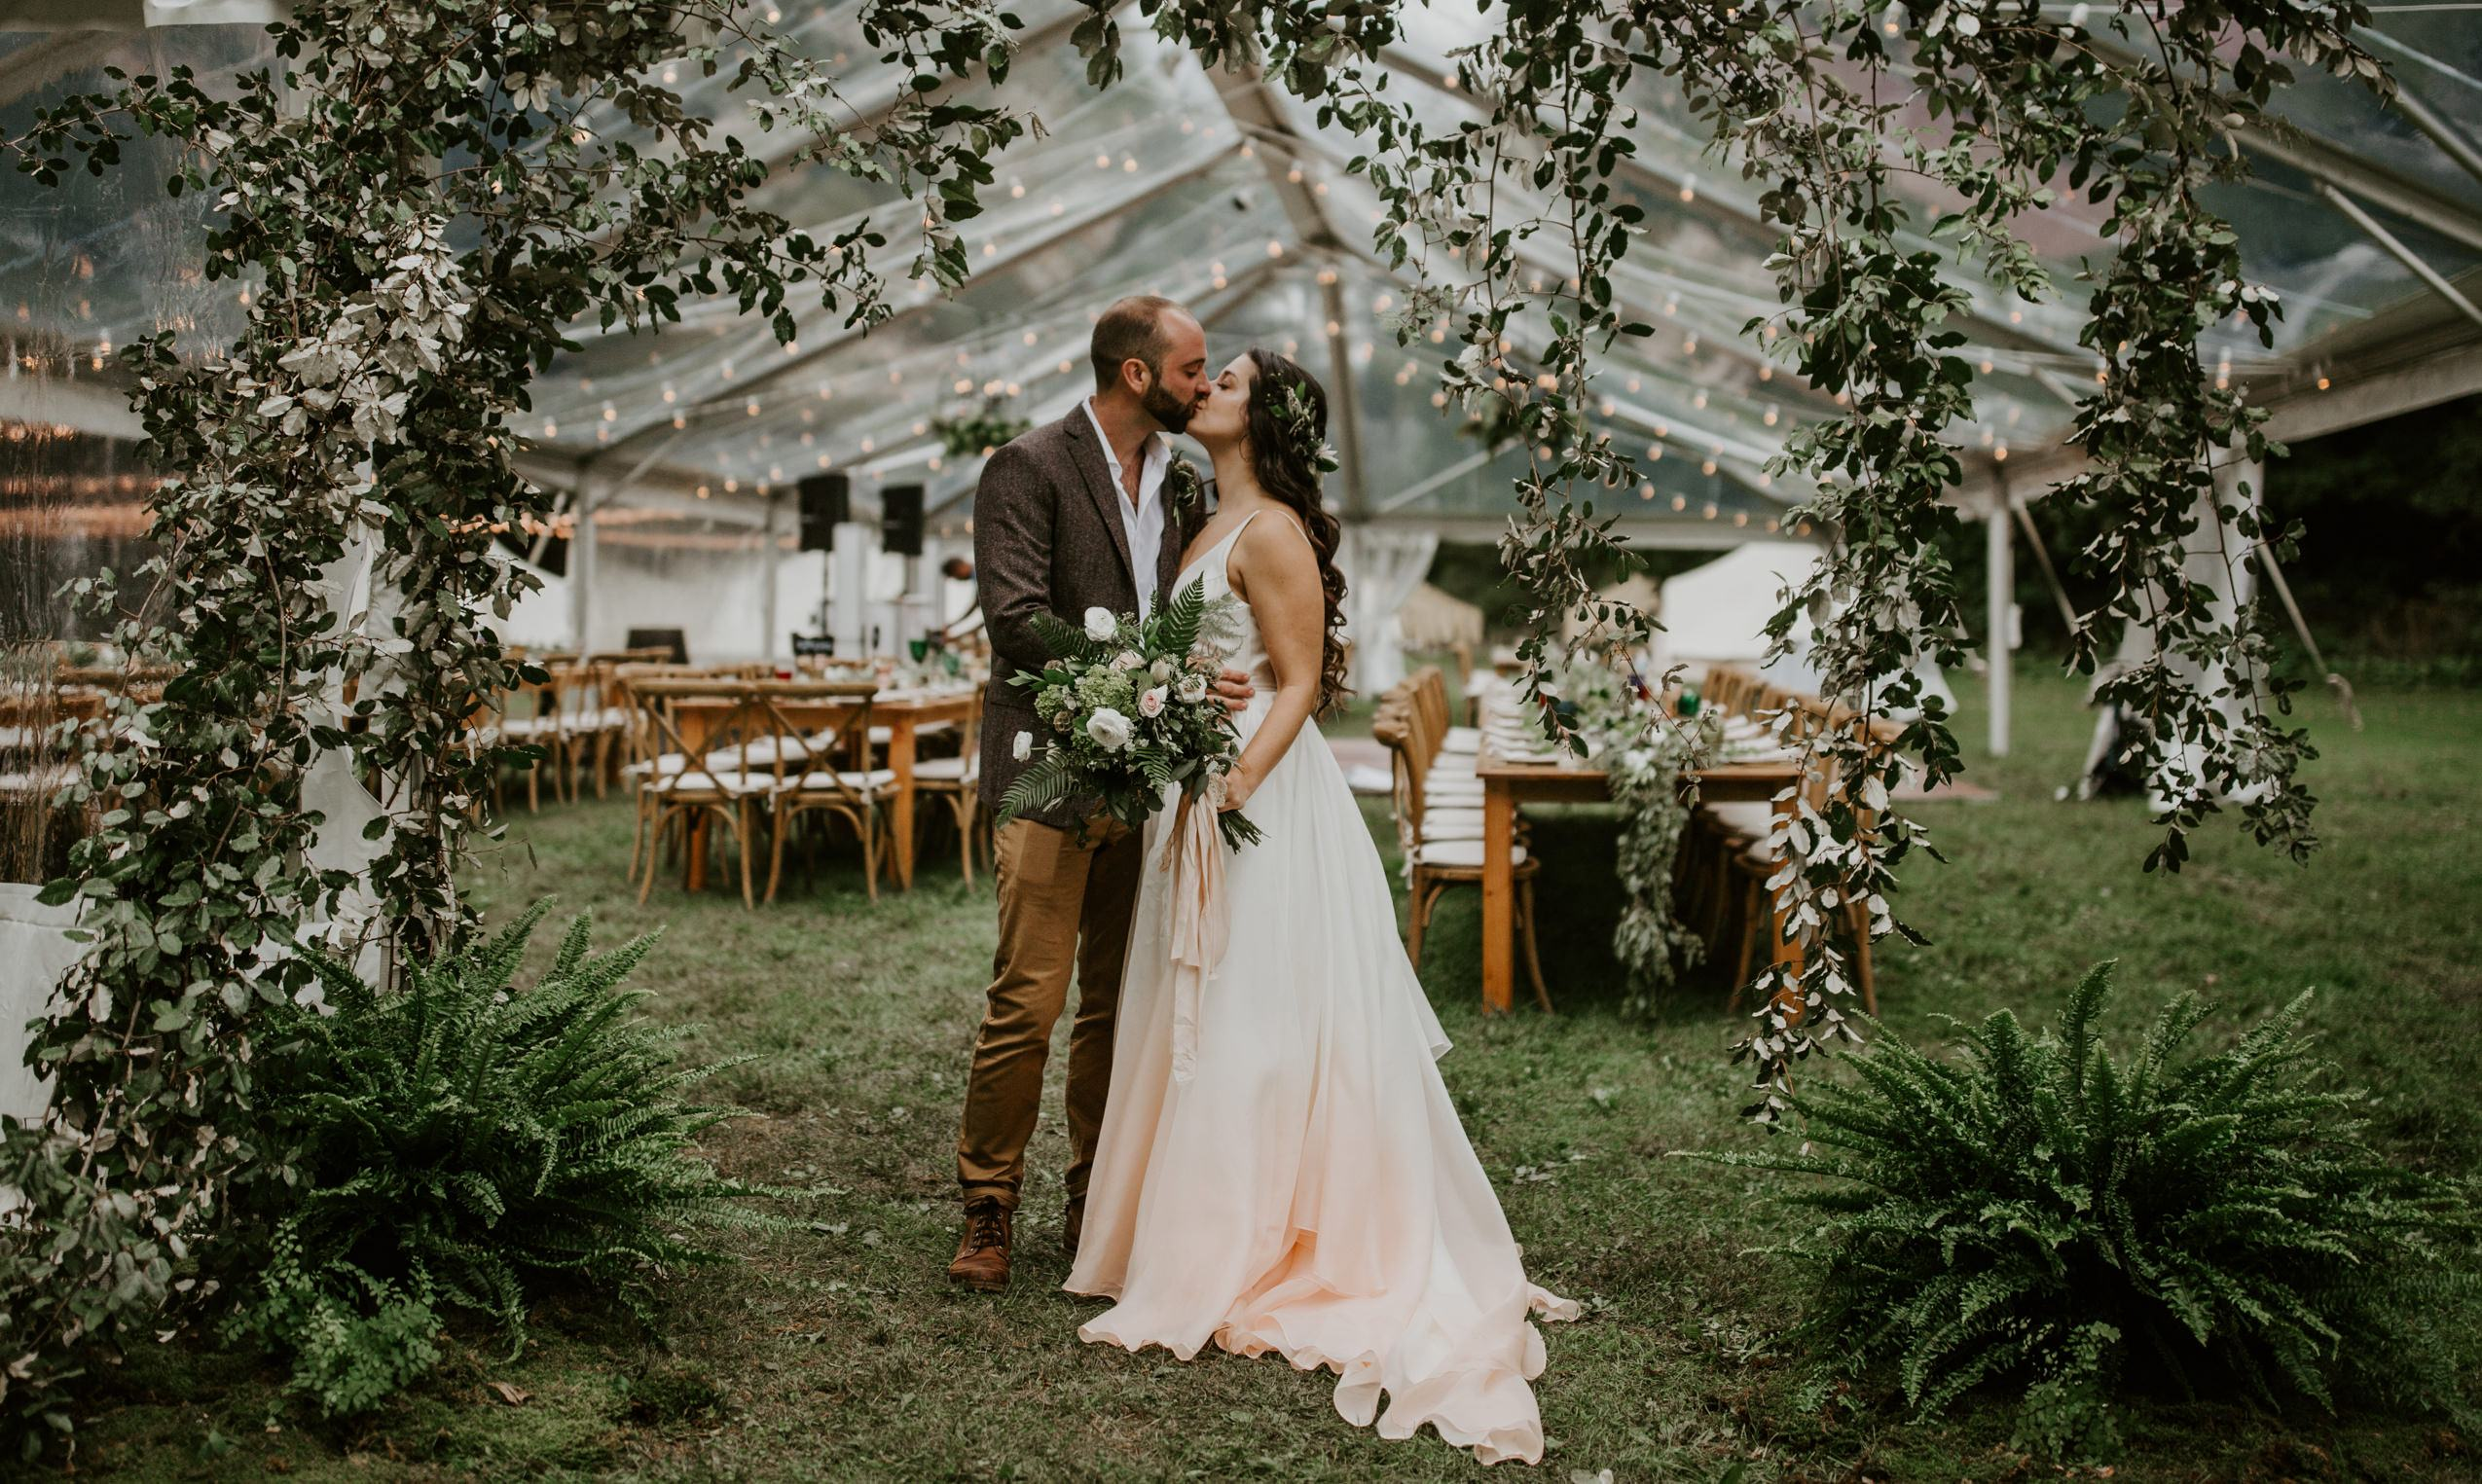 backyard-outdoor wedding